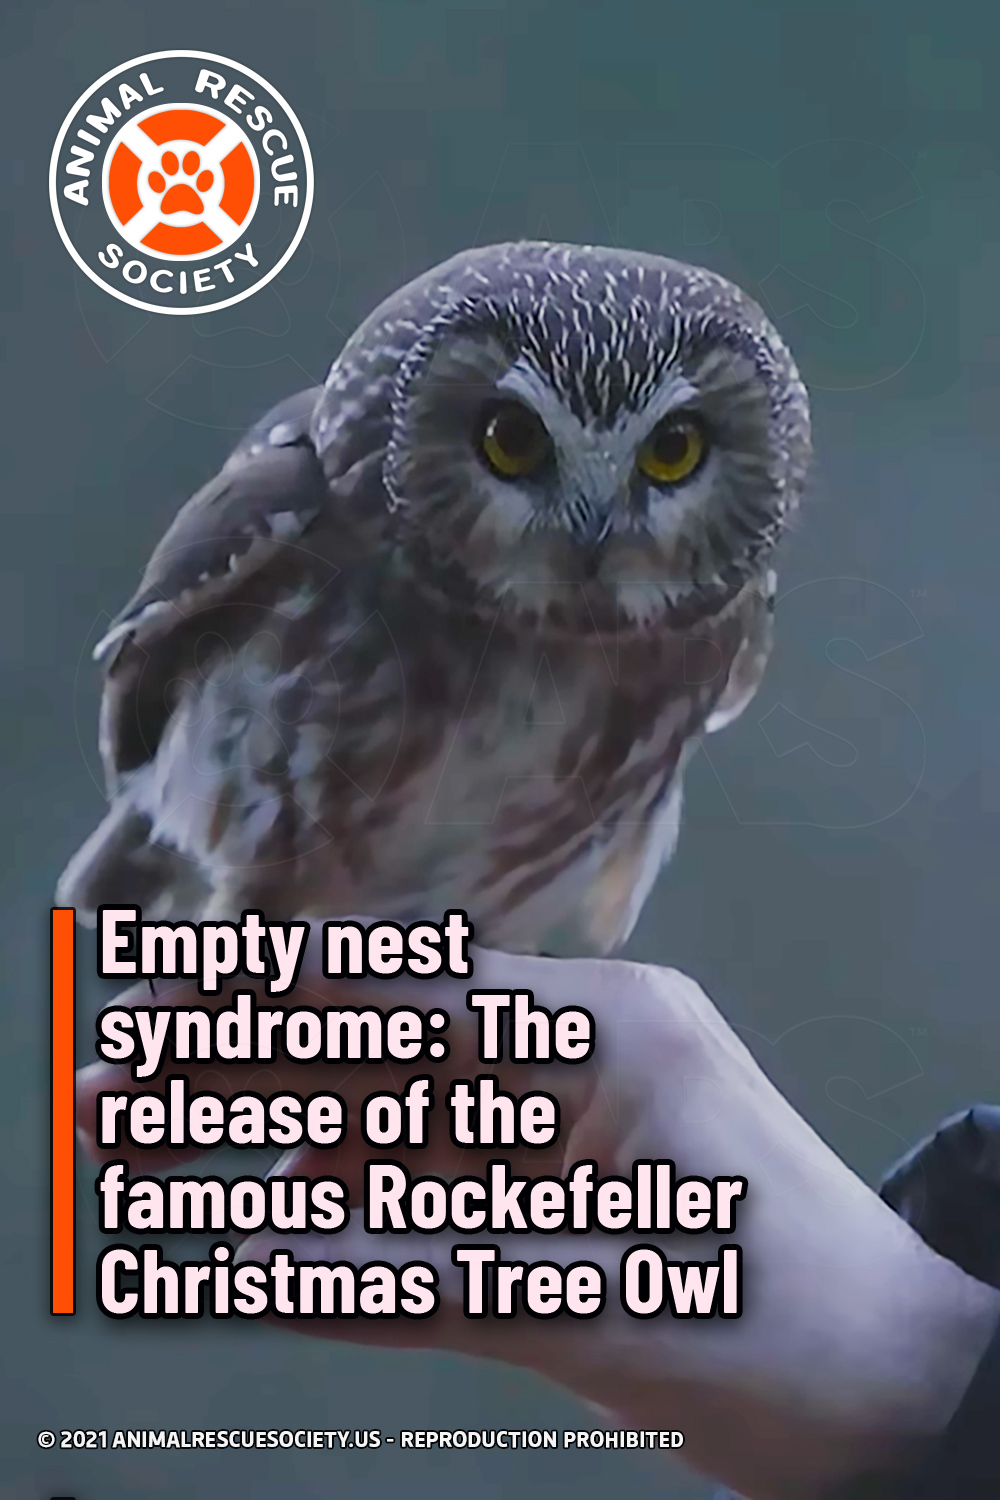 Empty nest syndrome: The release of the famous Rockefeller Christmas Tree Owl